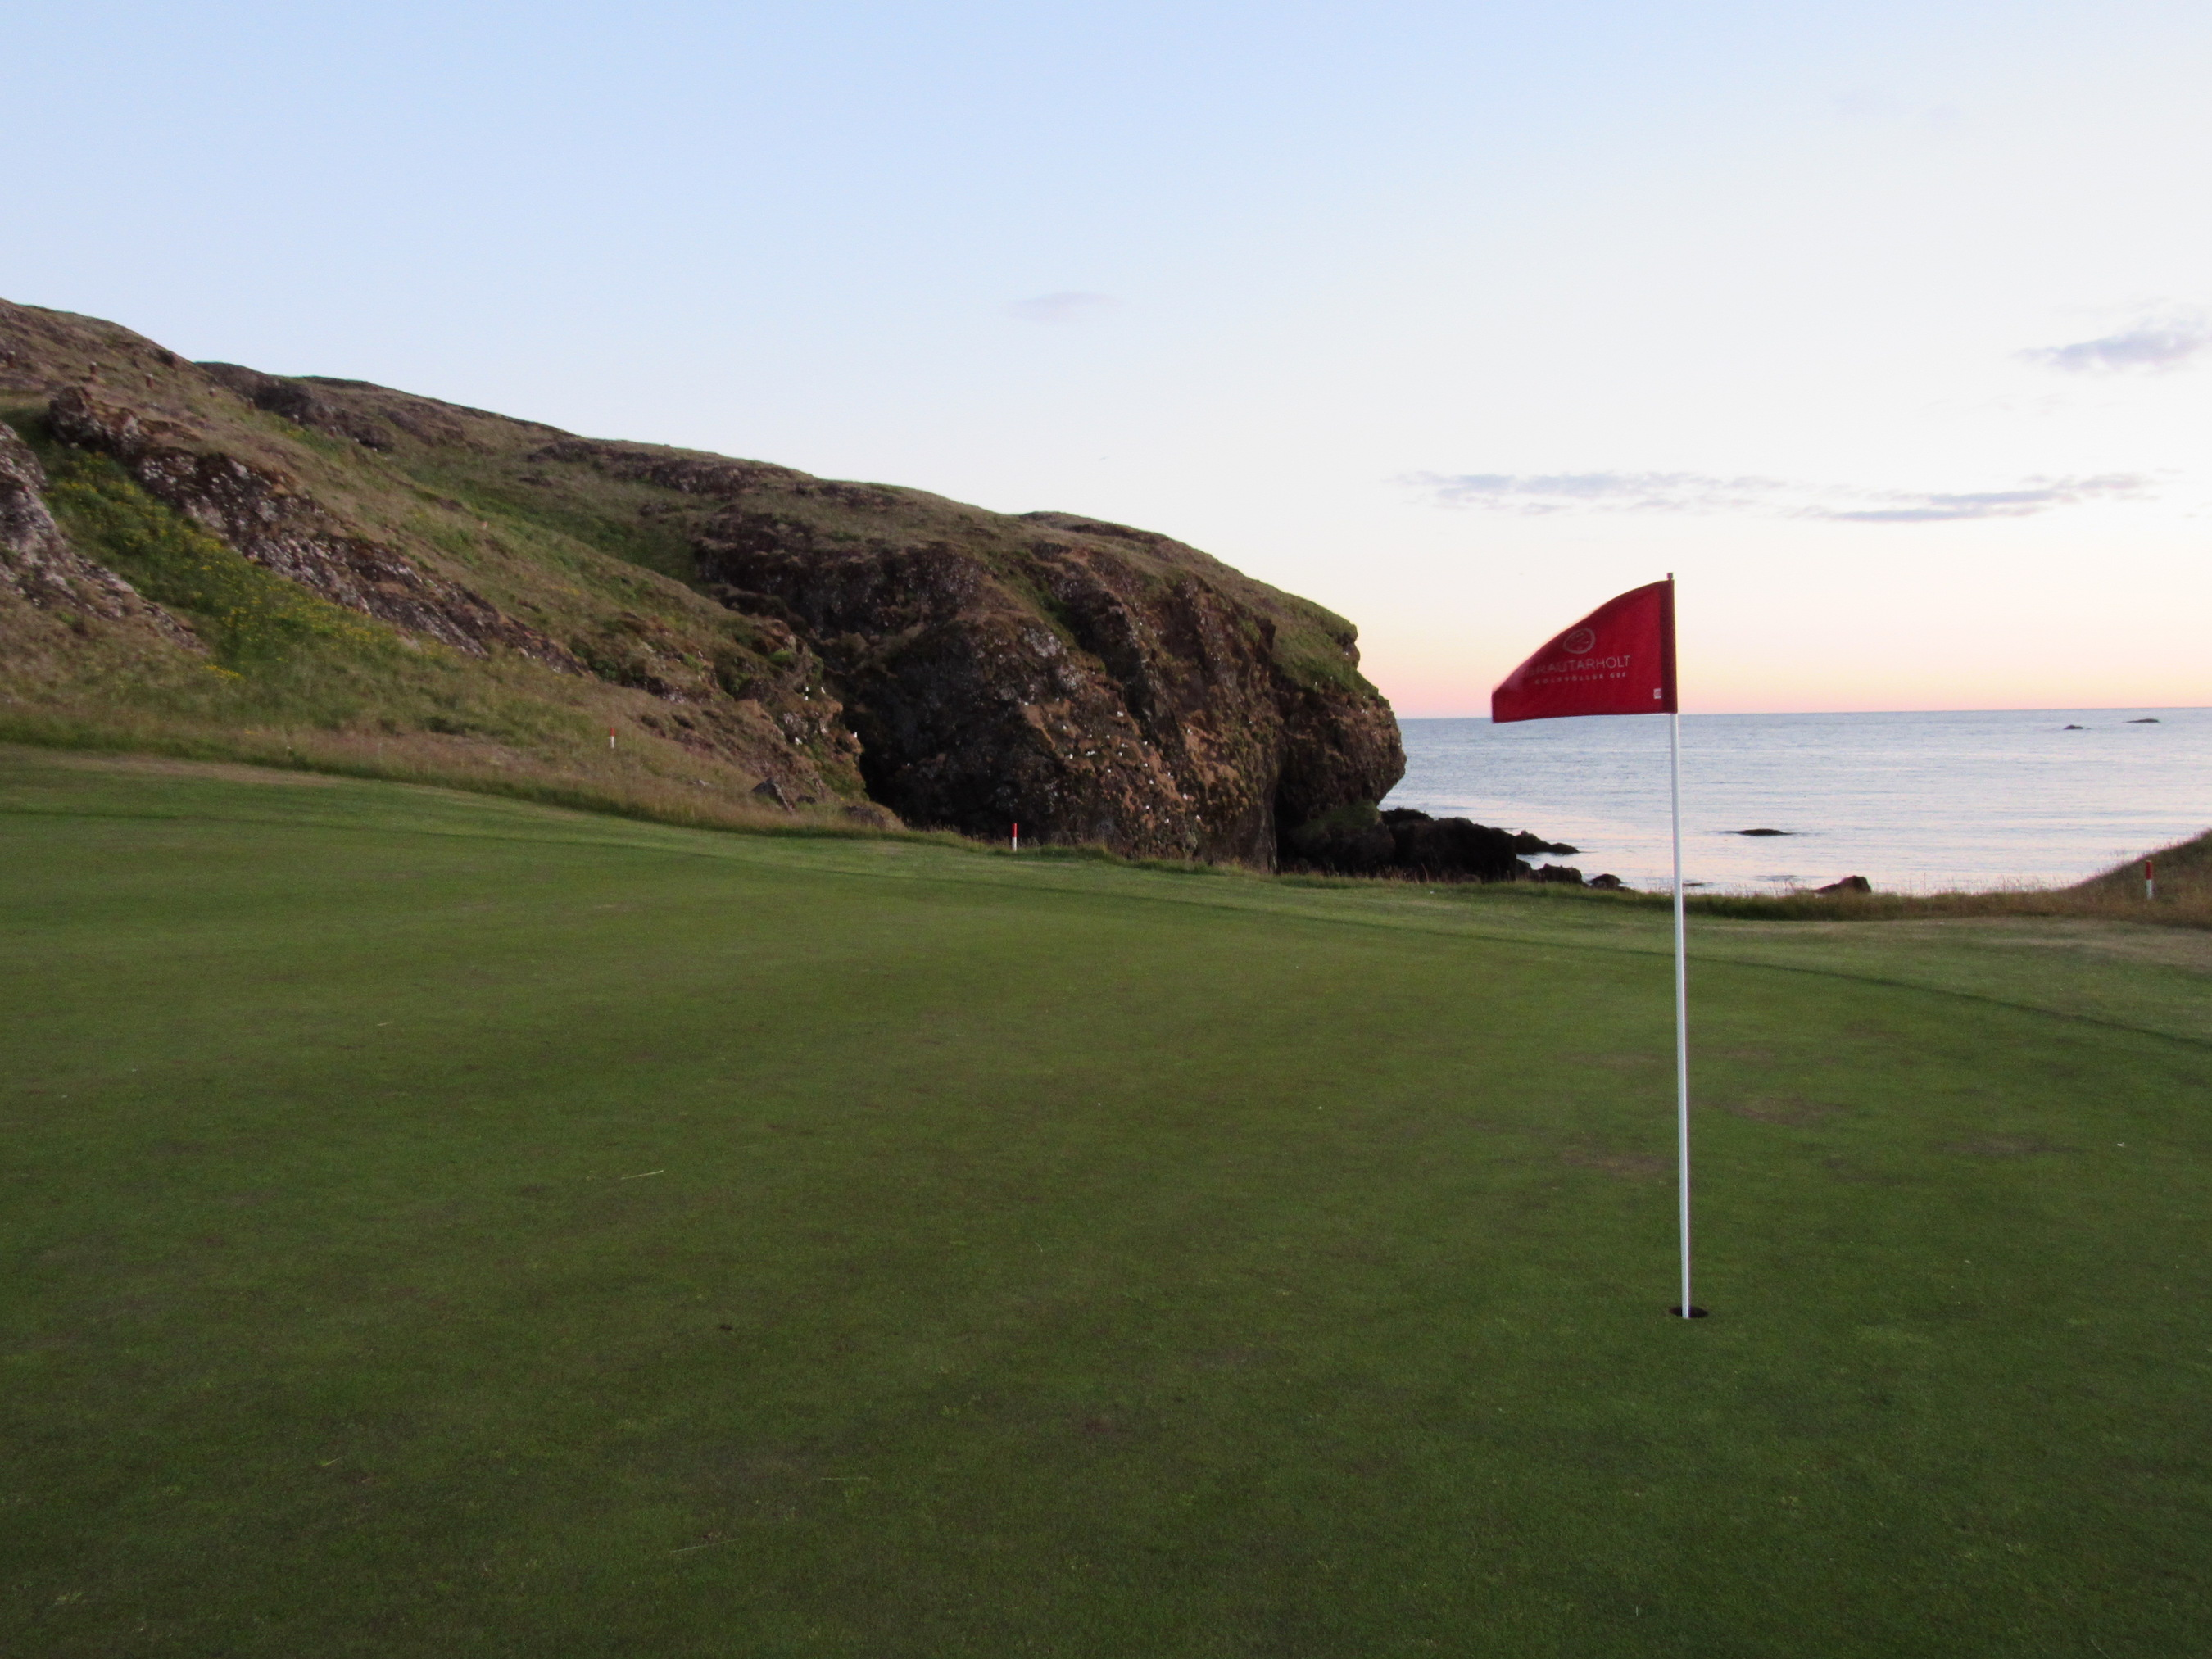 Golf in the Midnight Sun at Iceland's Brautarholt Golf Course